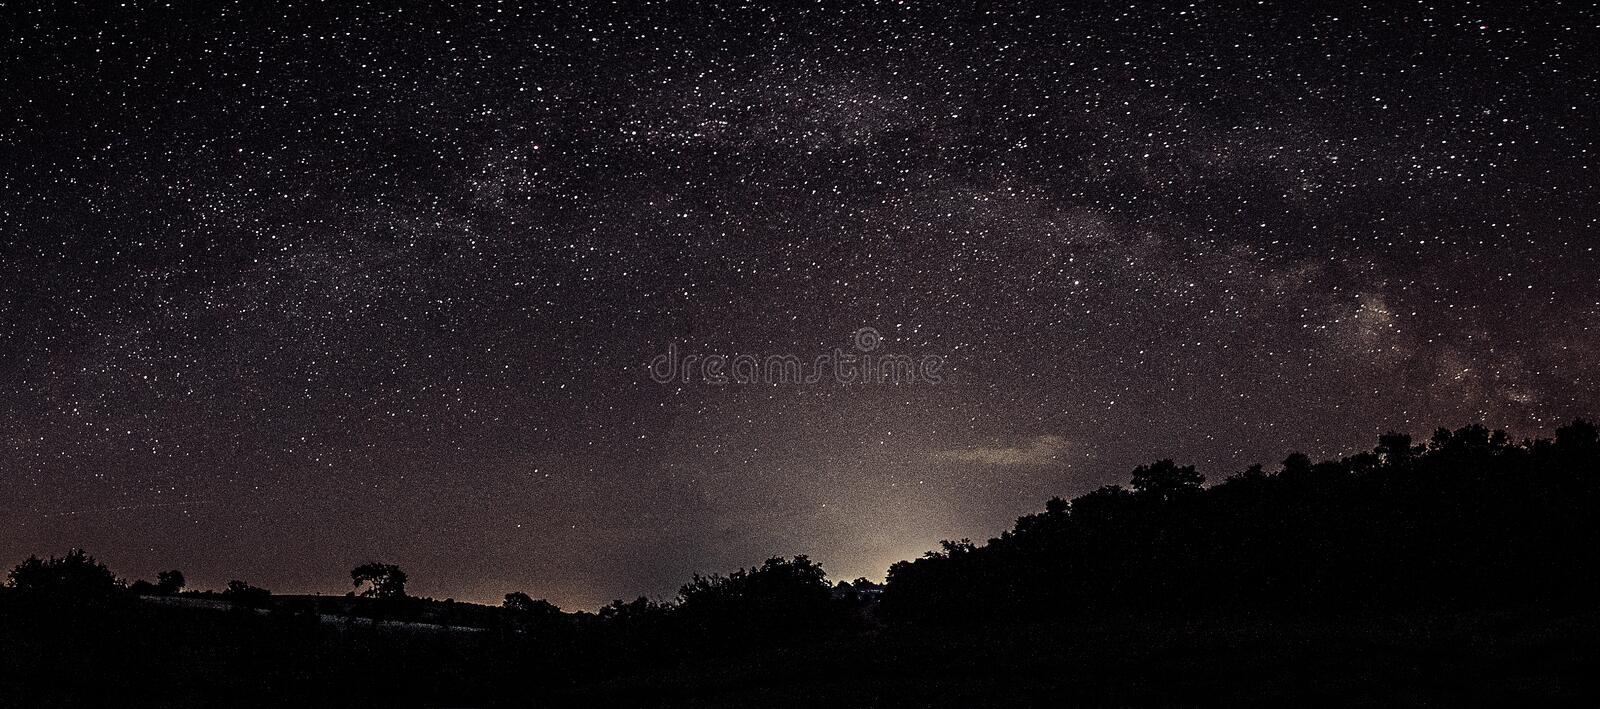 Notte Photography immagine stock